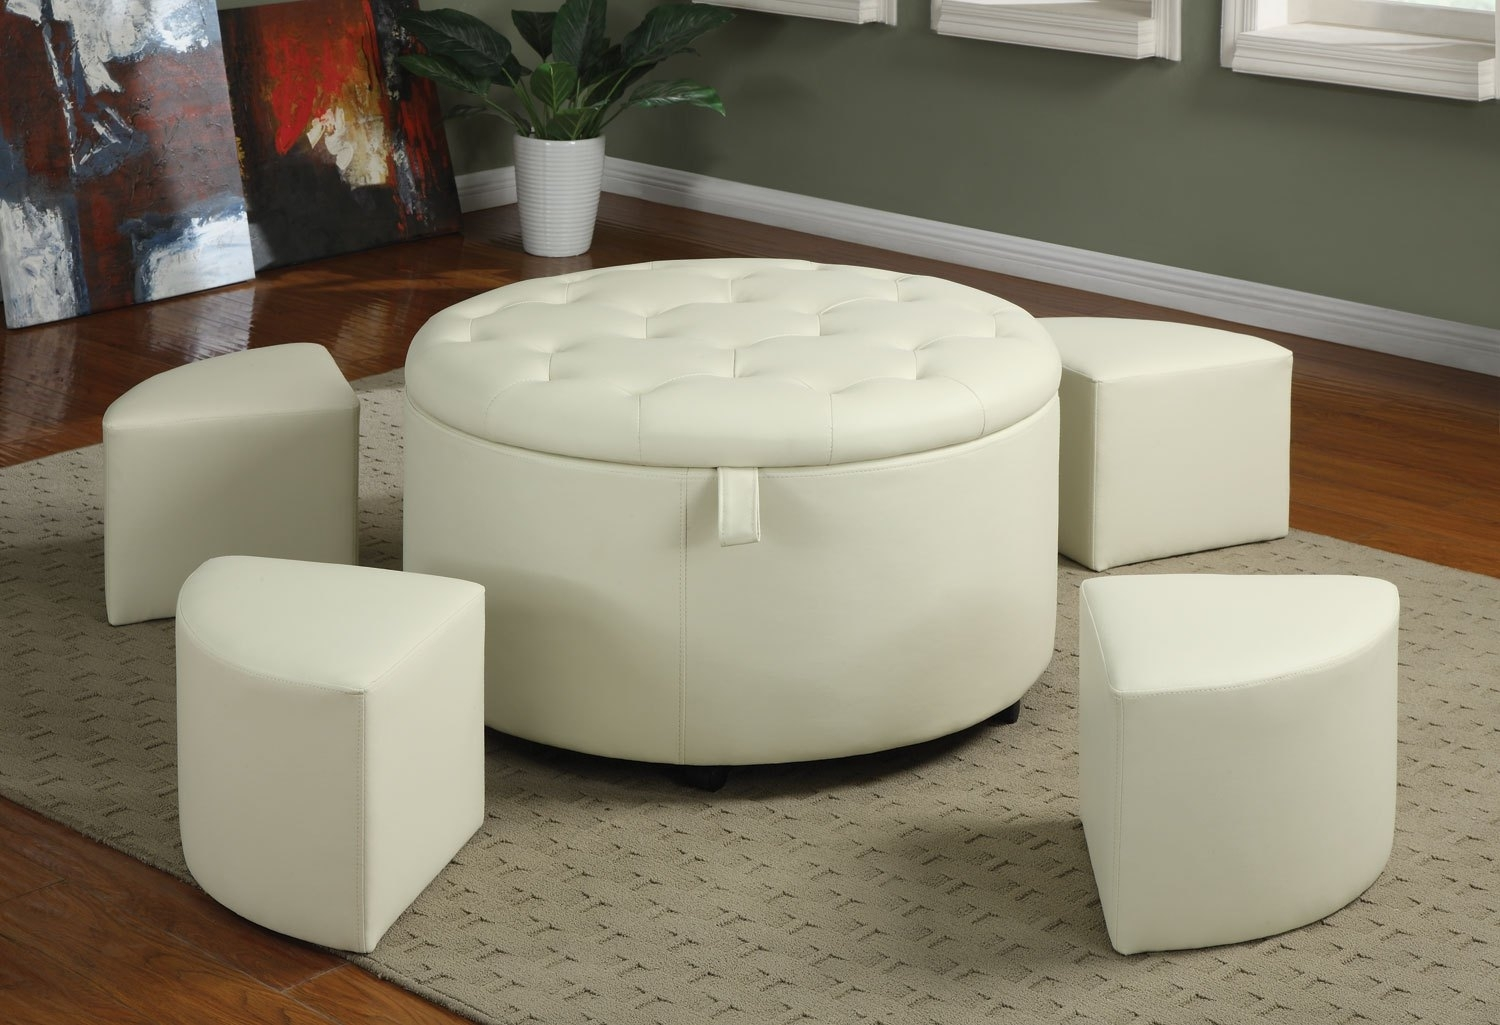 Rousing Coffee Table Large Round Ottoman Coffee Tables Round Large In Button Tufted Coffee Tables (Photo 22 of 30)